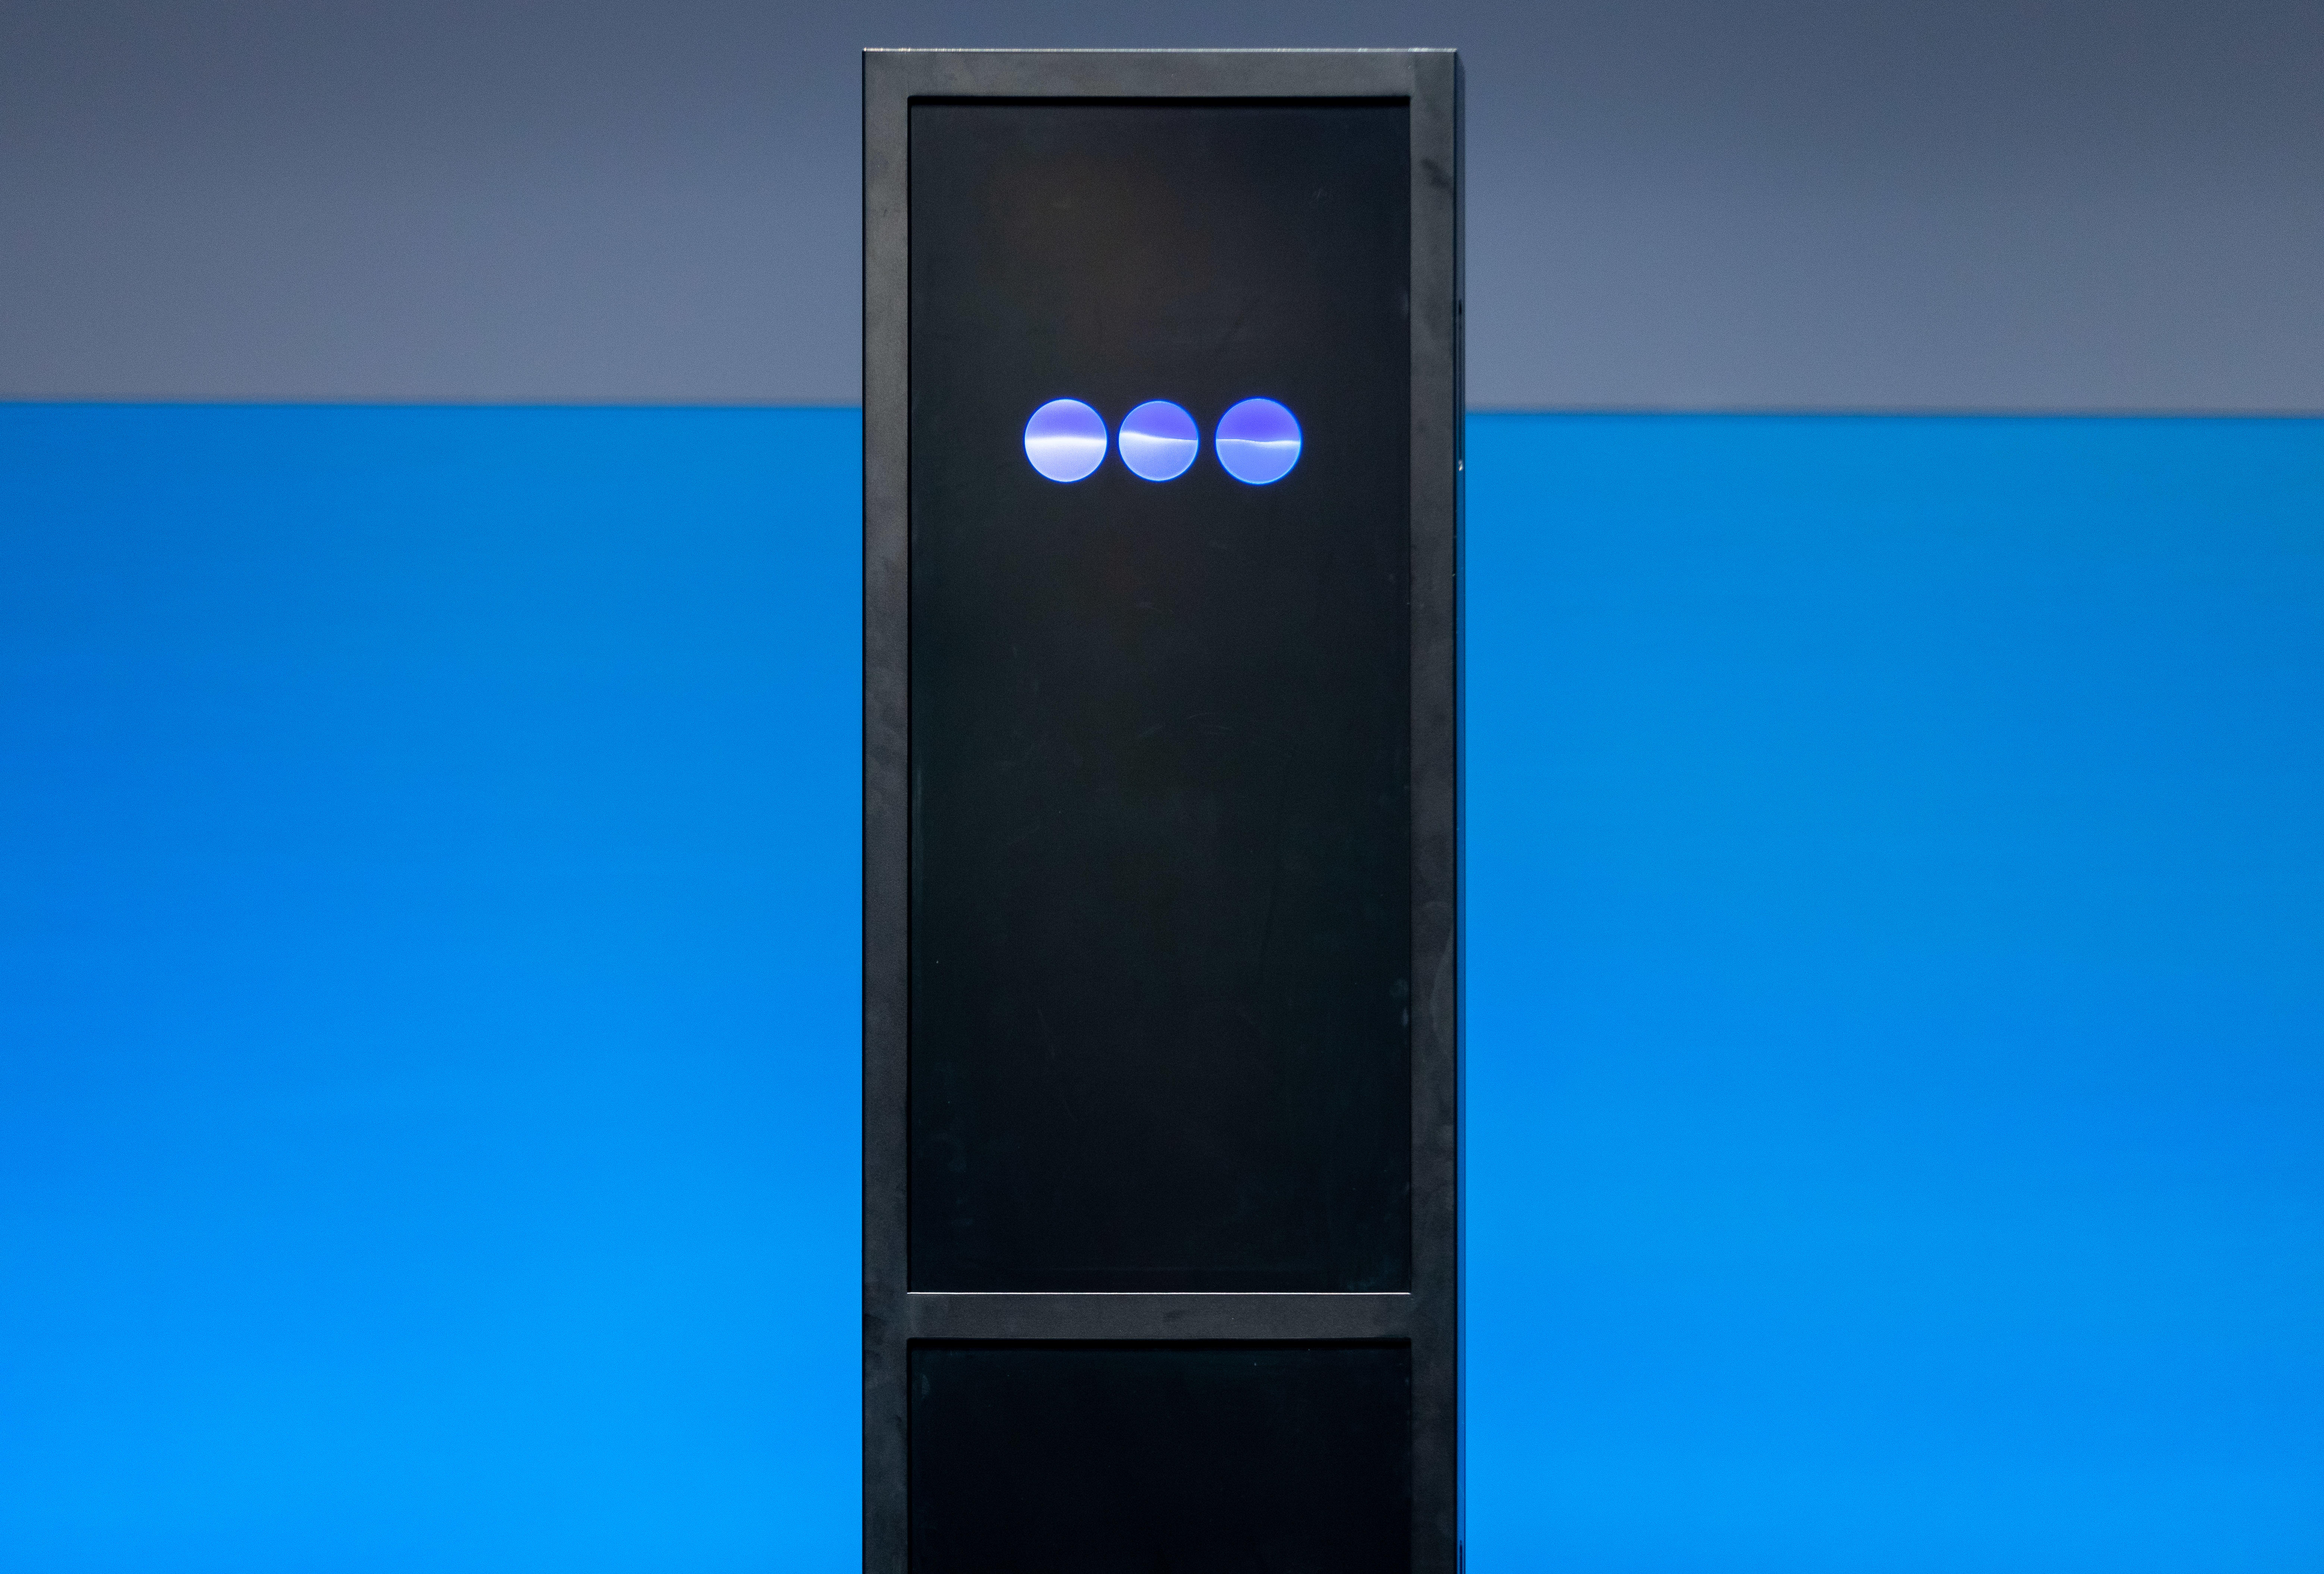 IBM Debater looks somewhat like the alien monolith in 2001: A Space Odyssey, only with animated bouncing blue circles to denote activity. Behind the scenes, Debater uses a group of powerful machines on IBM's cloud-computing infrastructure.